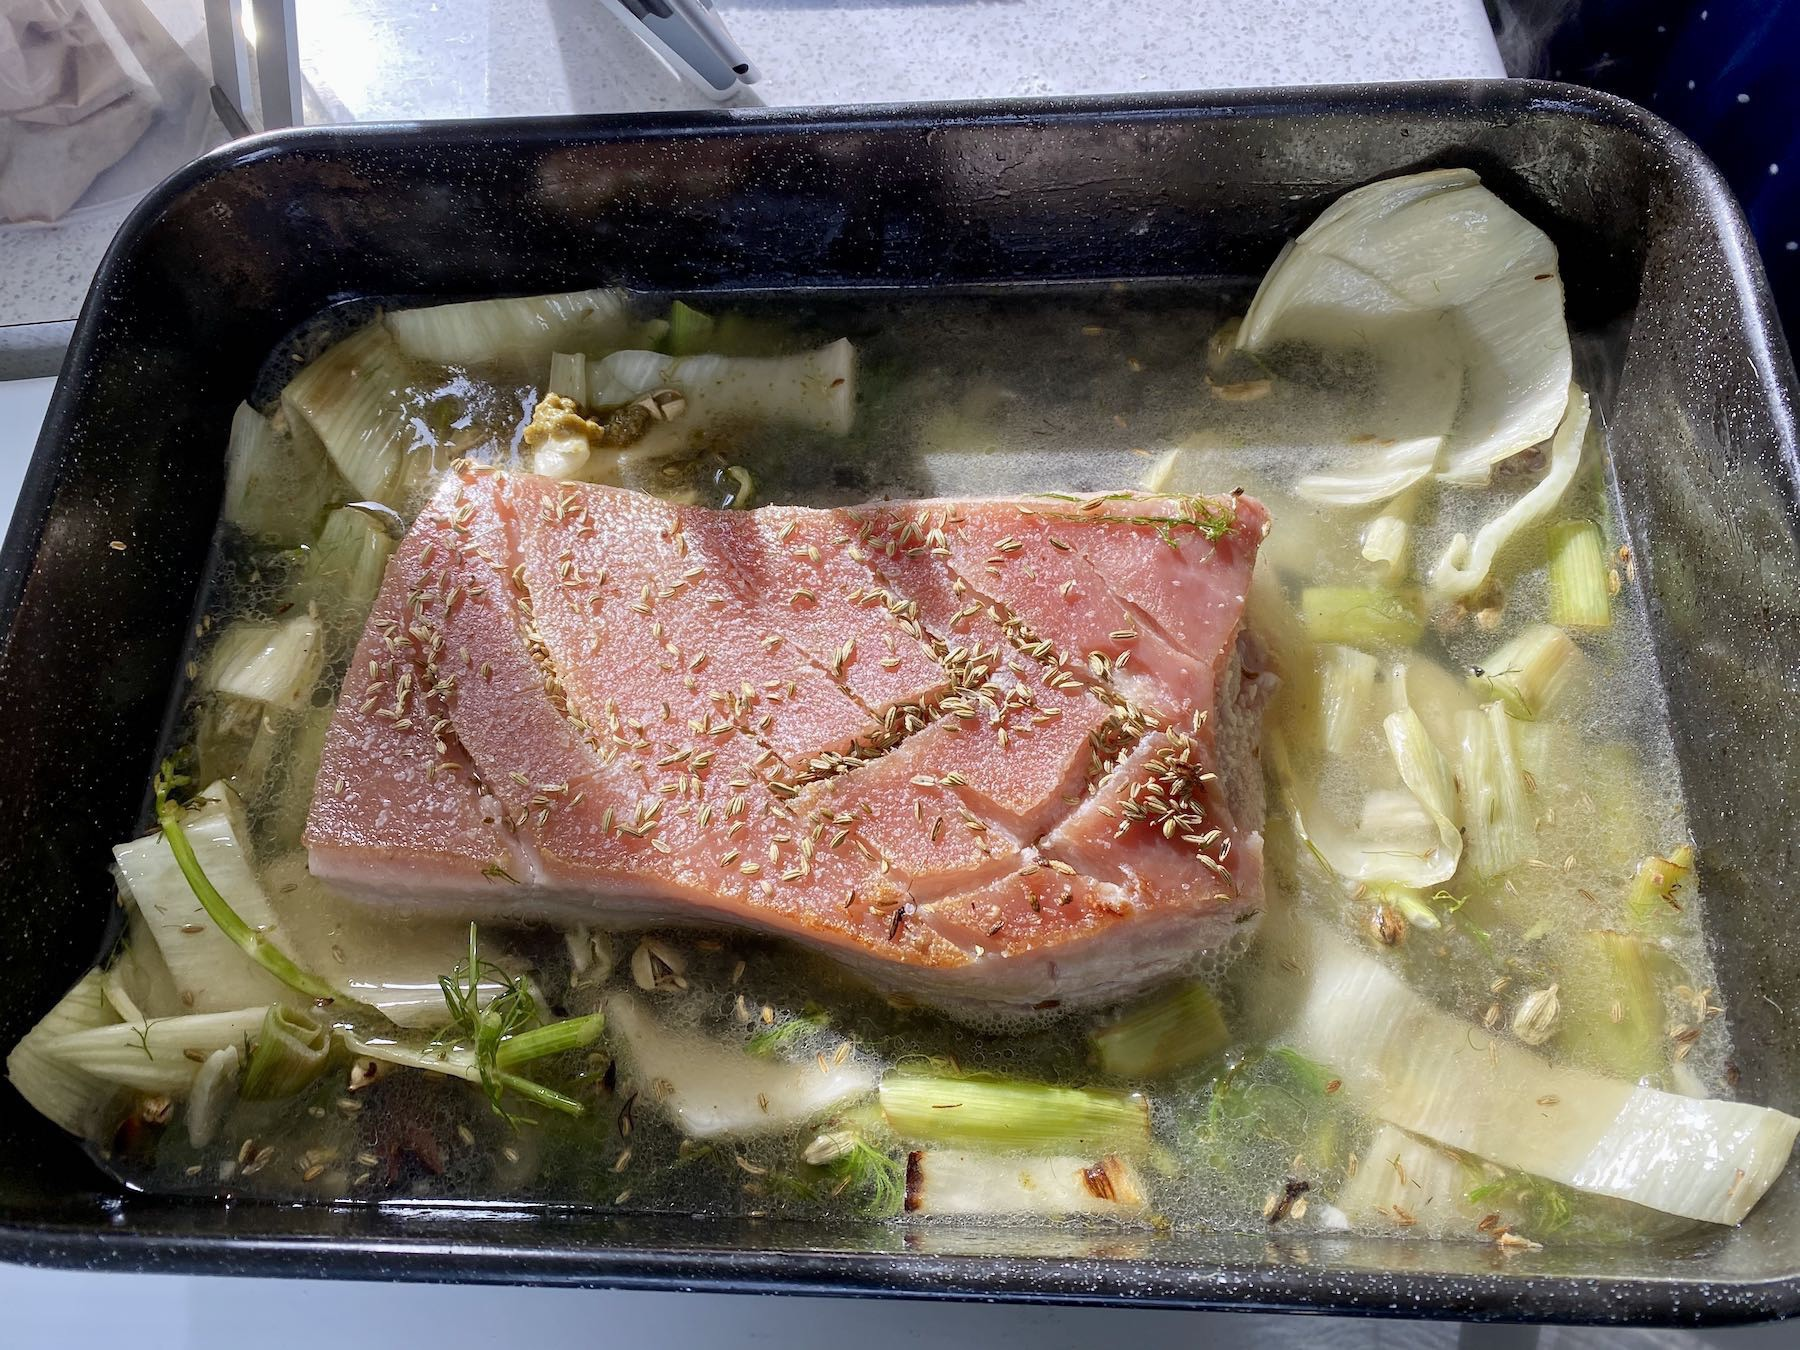 Pork belly ready to go in the oven.